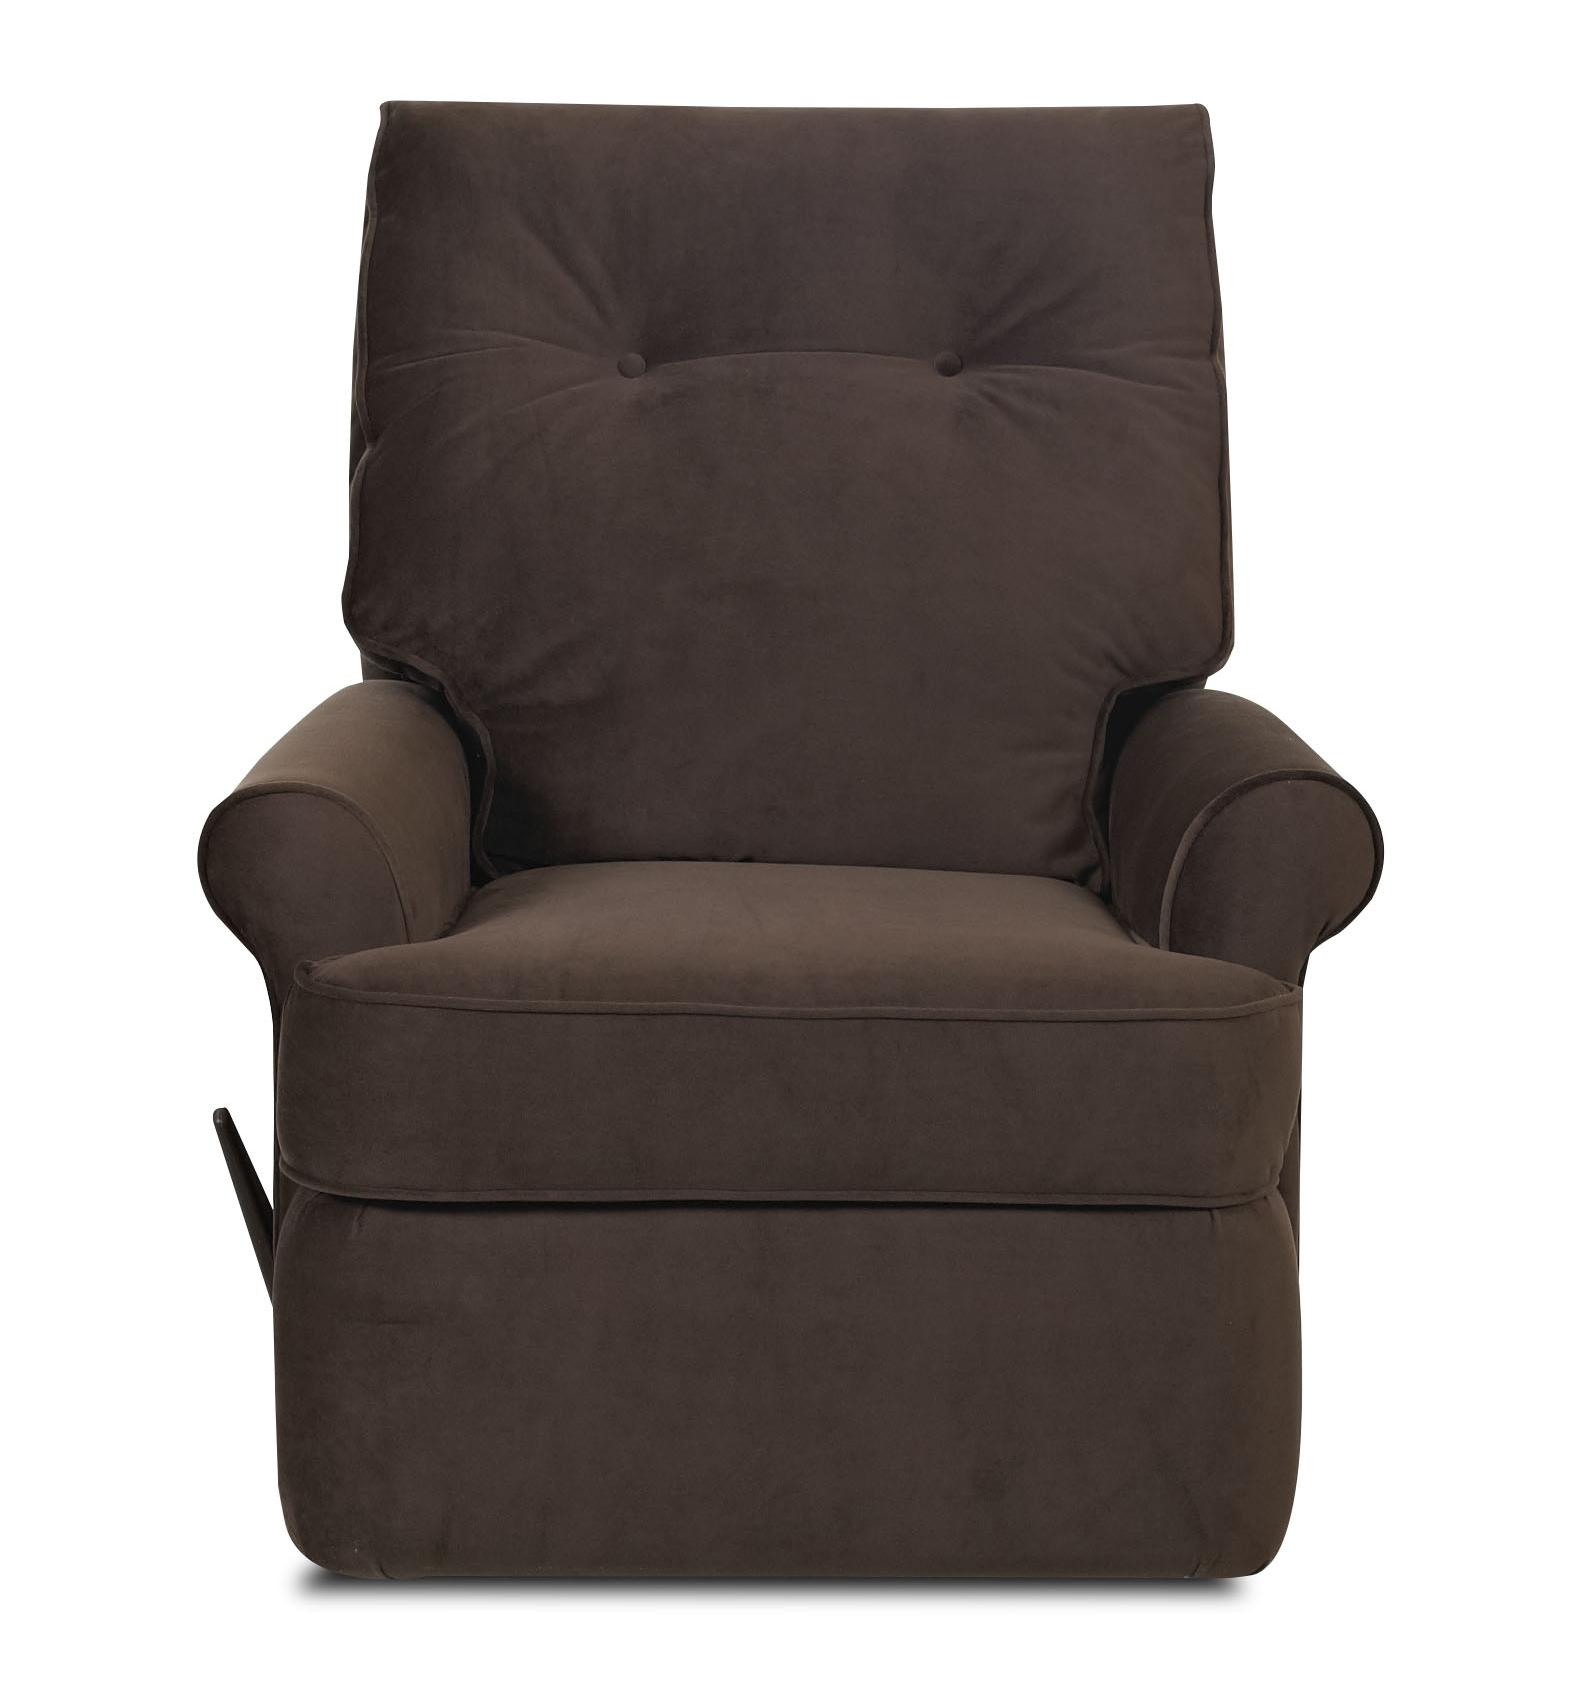 Transitional Reclining Chair with Rolled Arms and Welted Trim